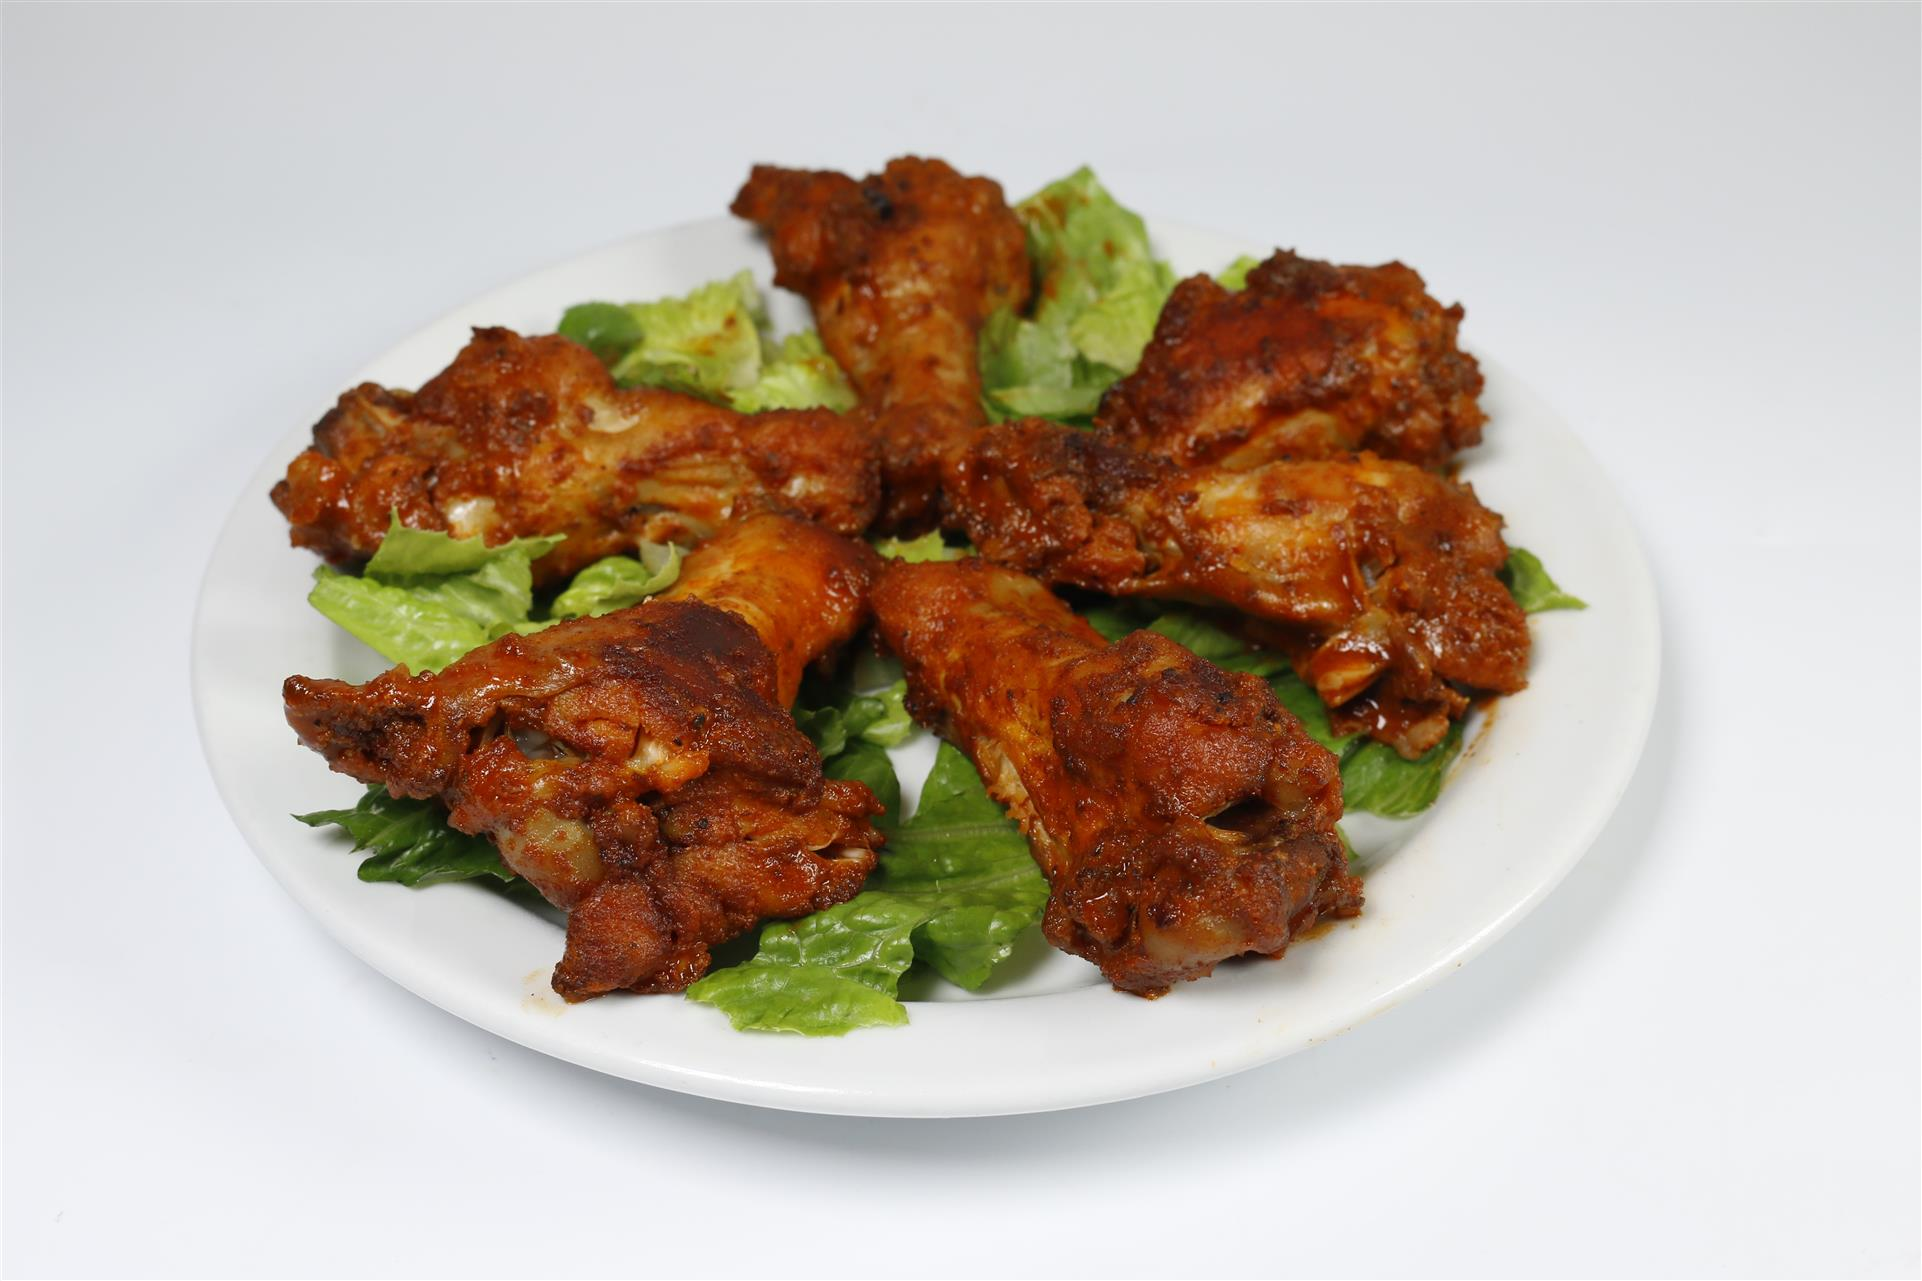 Crispy chicken wings covered in buffalo sauce on plate of lettuce